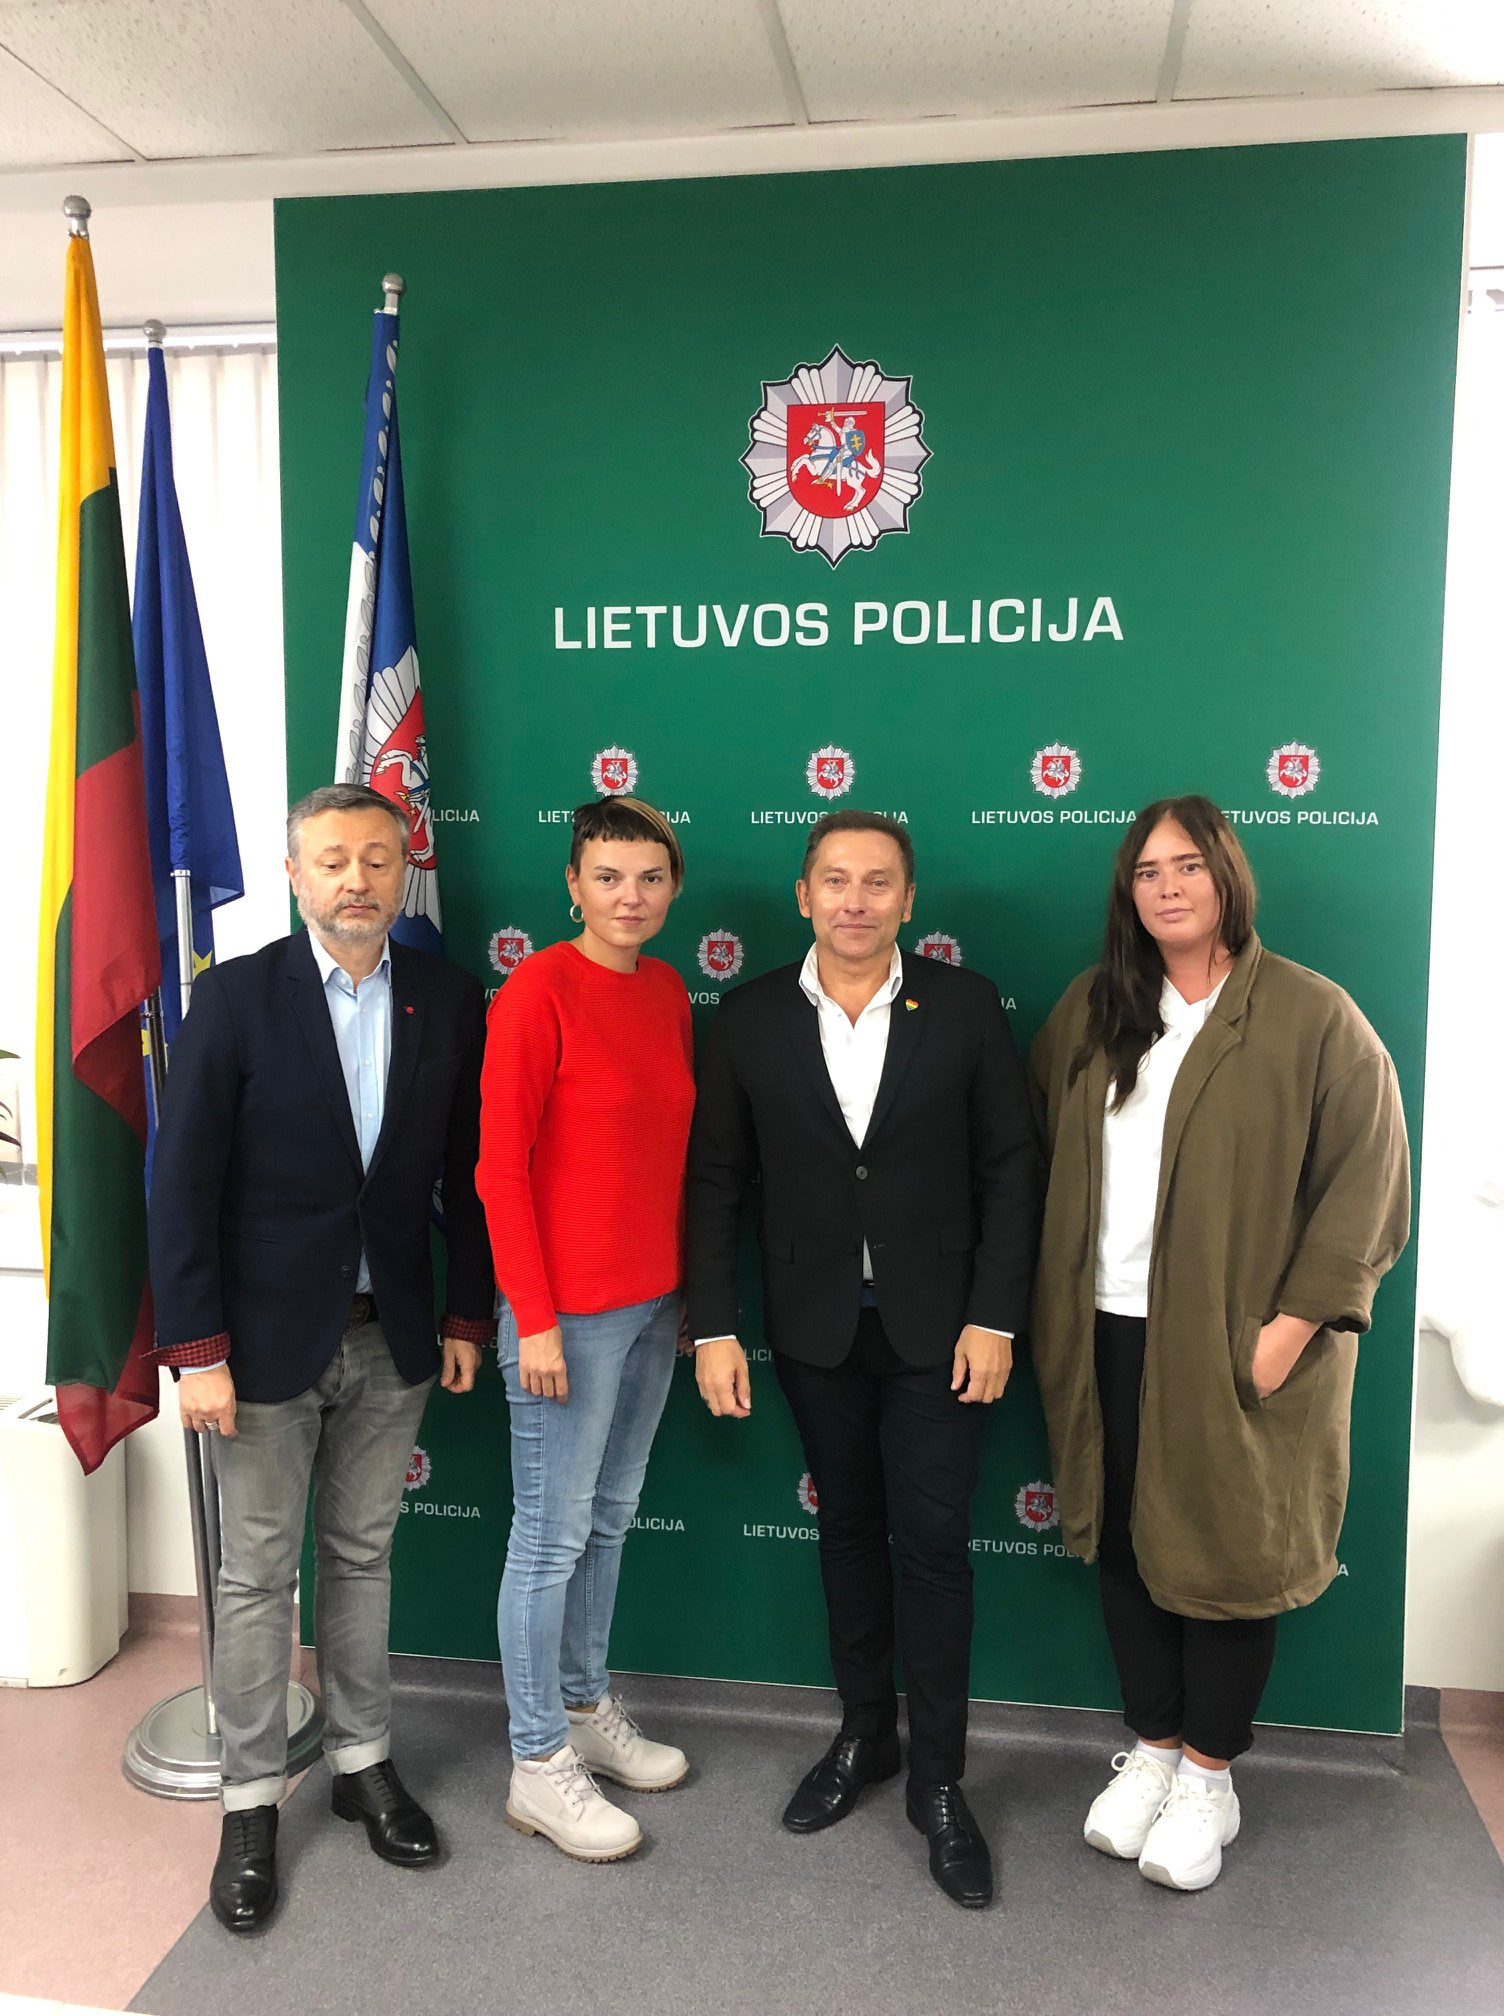 LGL met with Representatives of the Lithuanian Police.